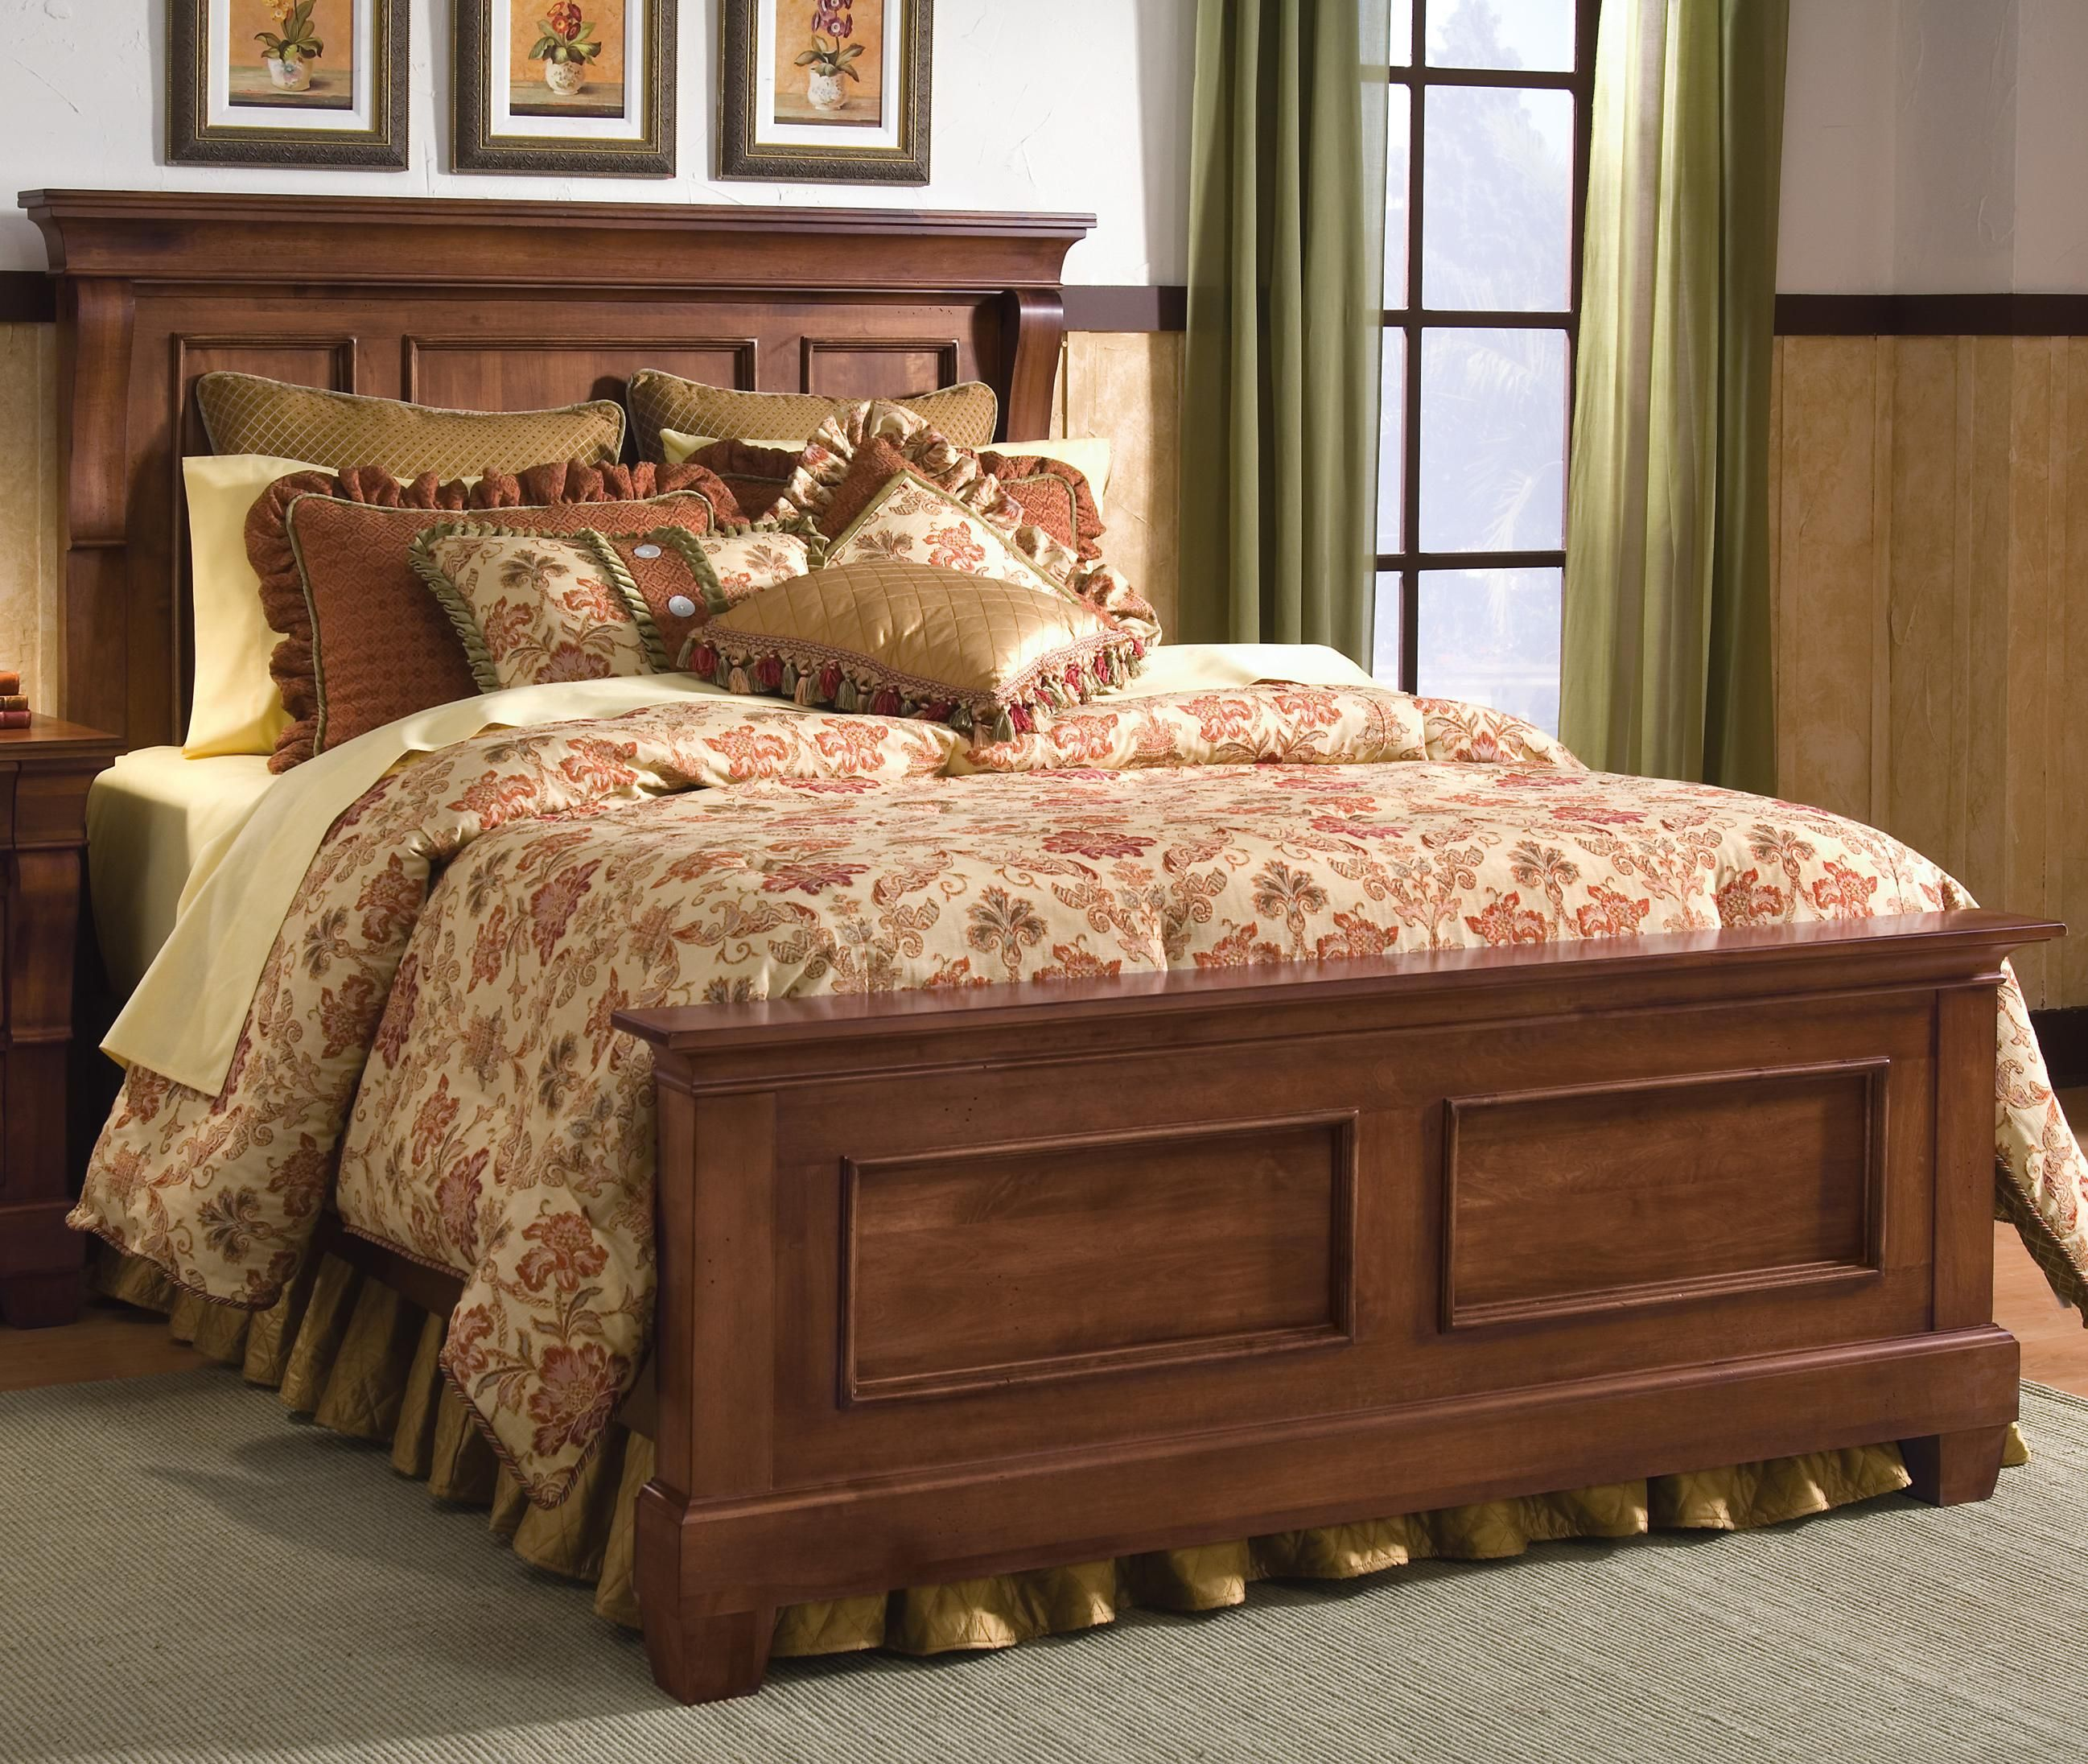 Tuscan Style Tuscano Queen Panel Bed By Kincaid Furniture Tuscandecor Bedroomfurniture